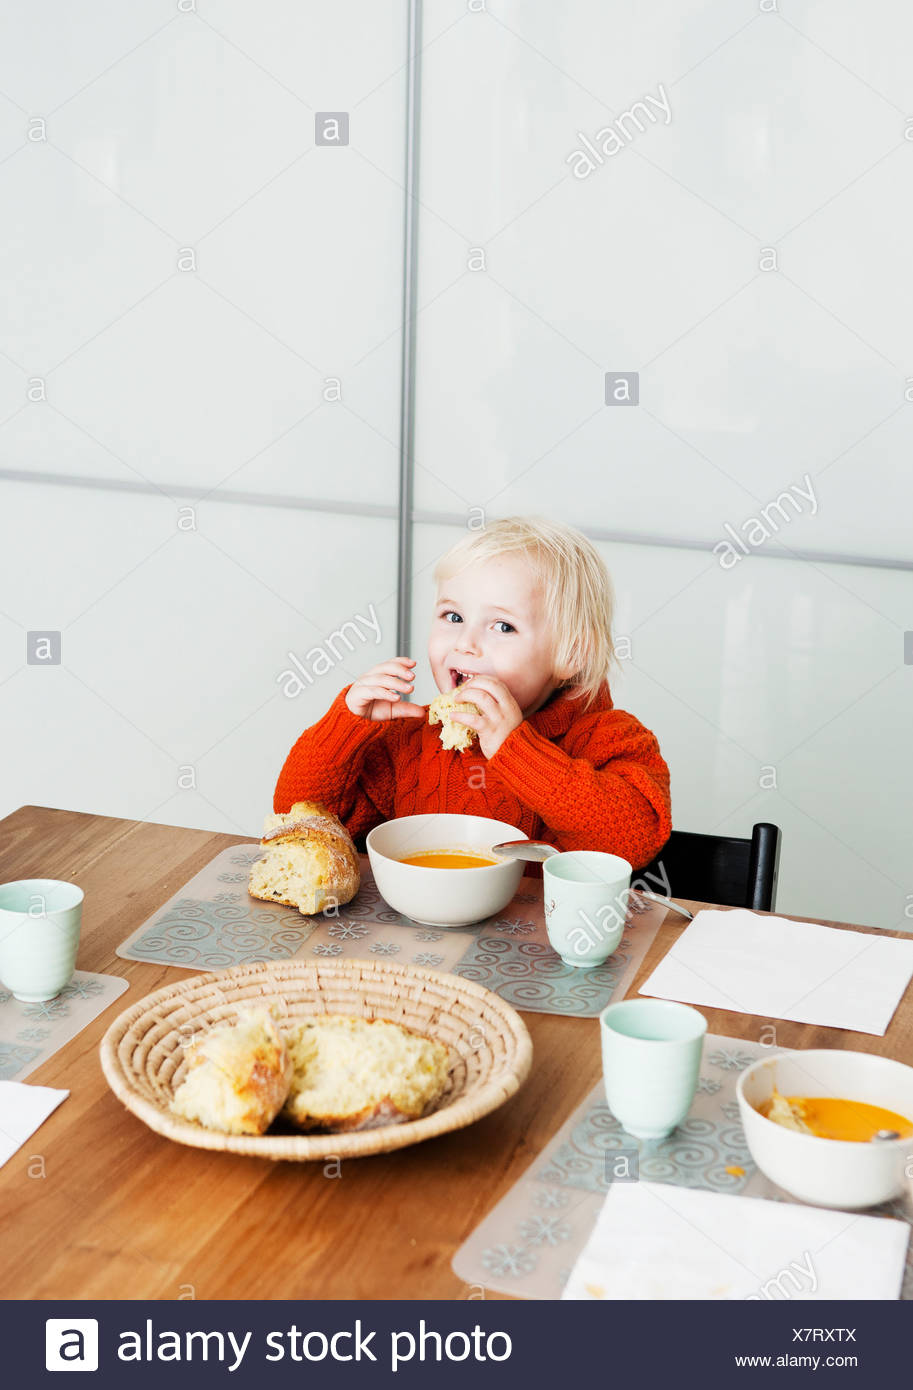 Boy eating lunch at table - Stock Image